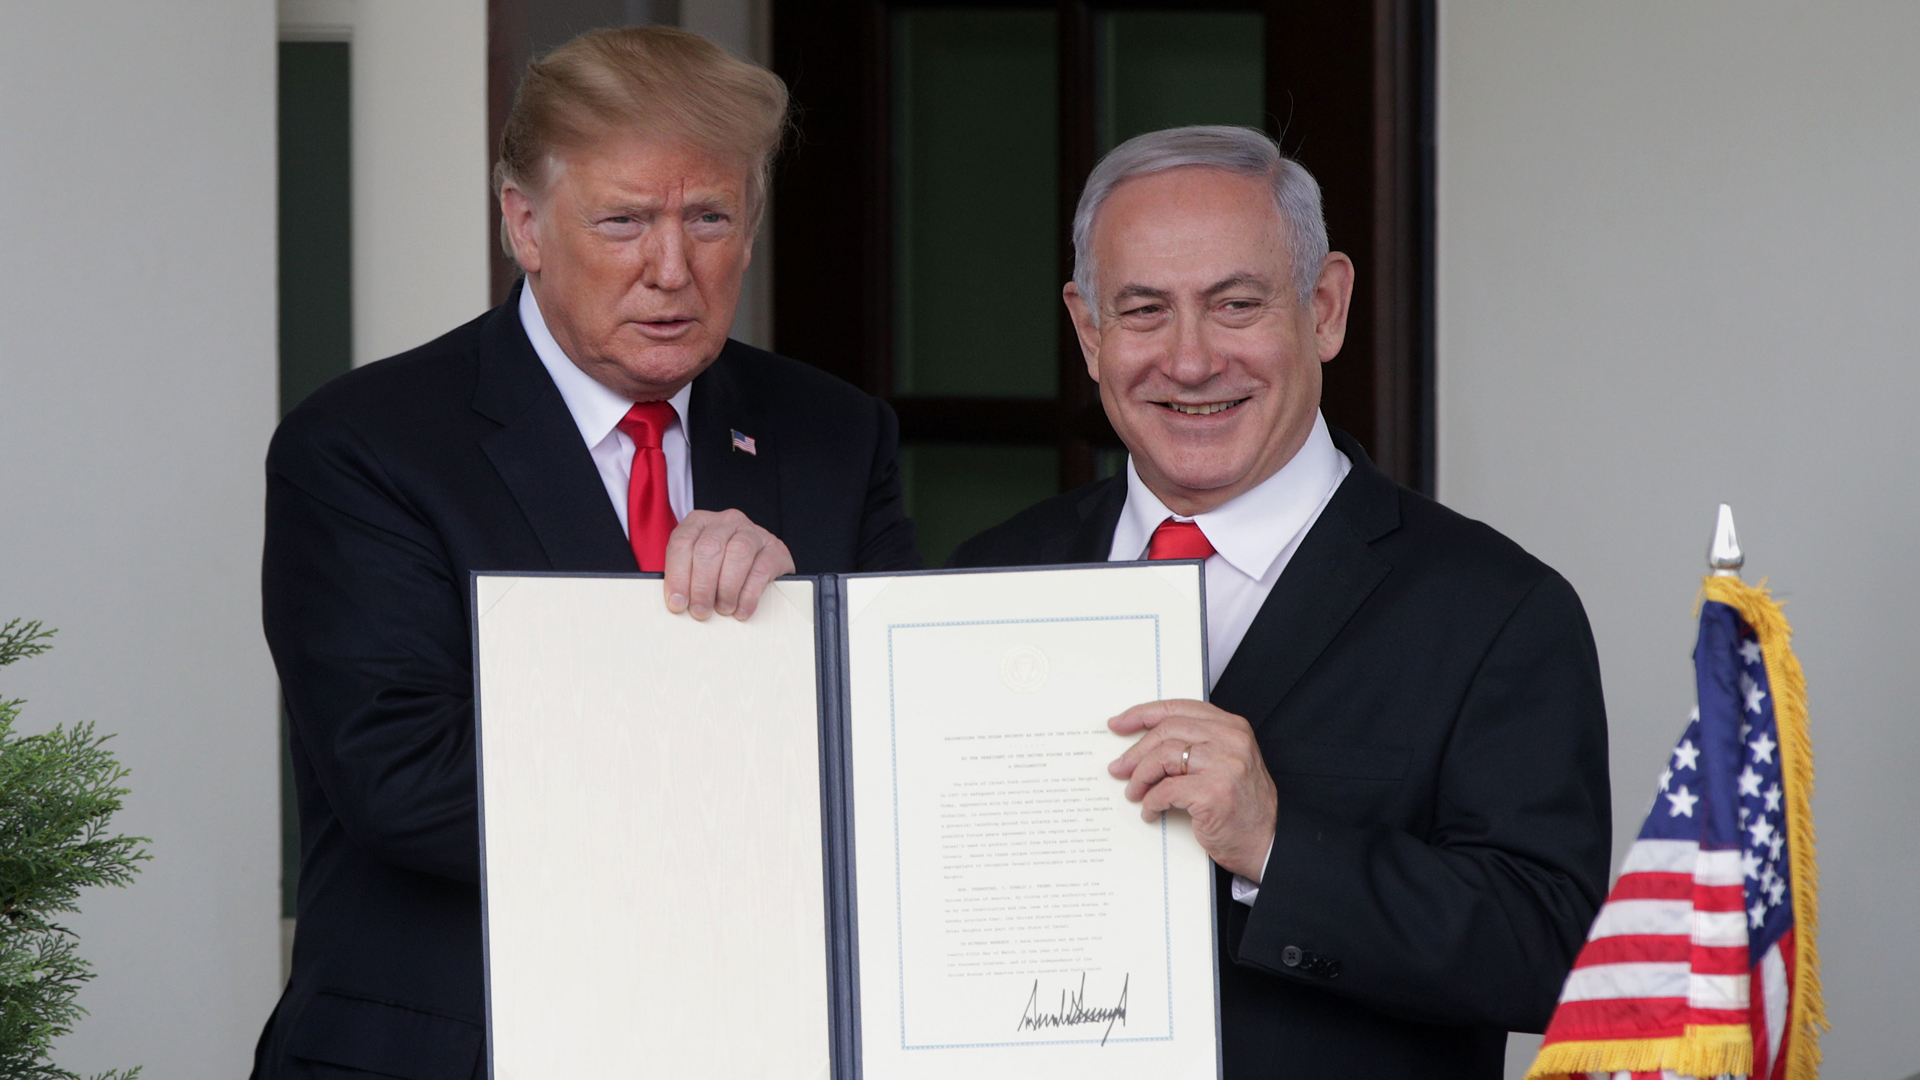 Donald Trump and Prime Minister of Israel Benjamin Netanyahu show members of the media the proclamation Trump signed recognizing Israel's sovereignty over Golan Heights at the White House on March 25, 2019. (Credit: Alex Wong/Getty Images)